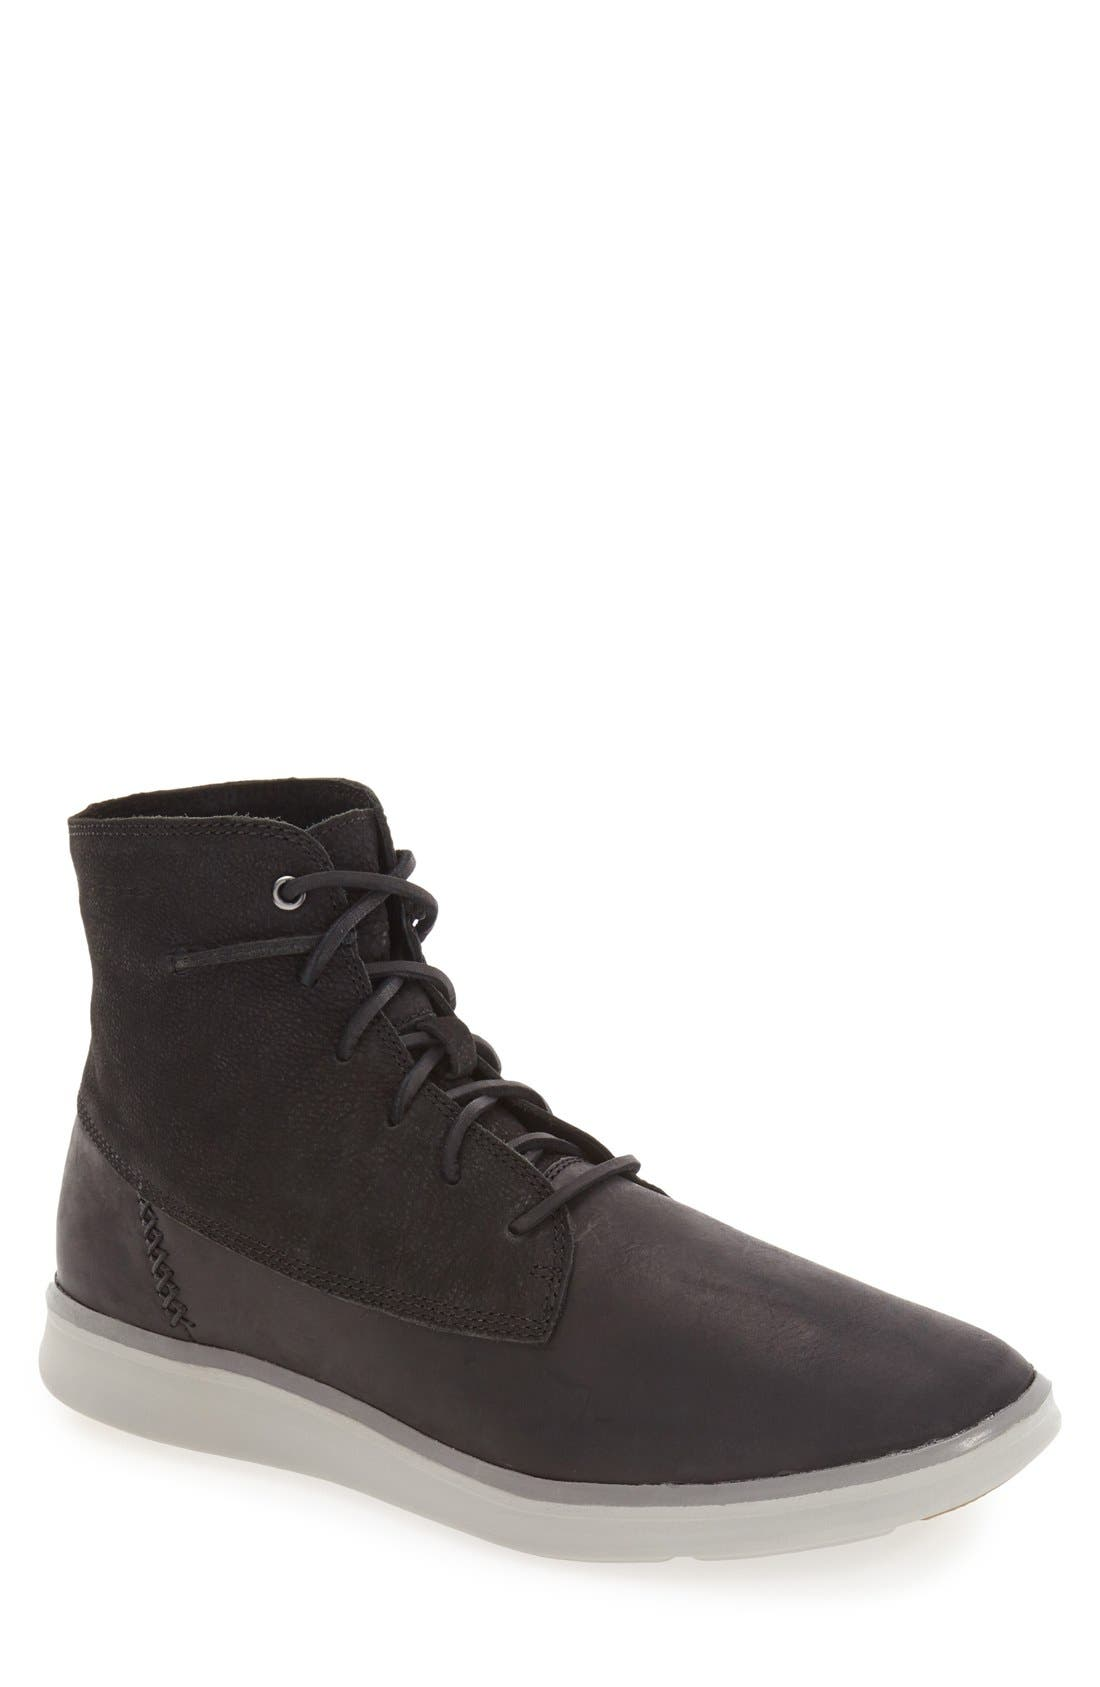 'Lamont' High Top Sneaker,                             Main thumbnail 1, color,